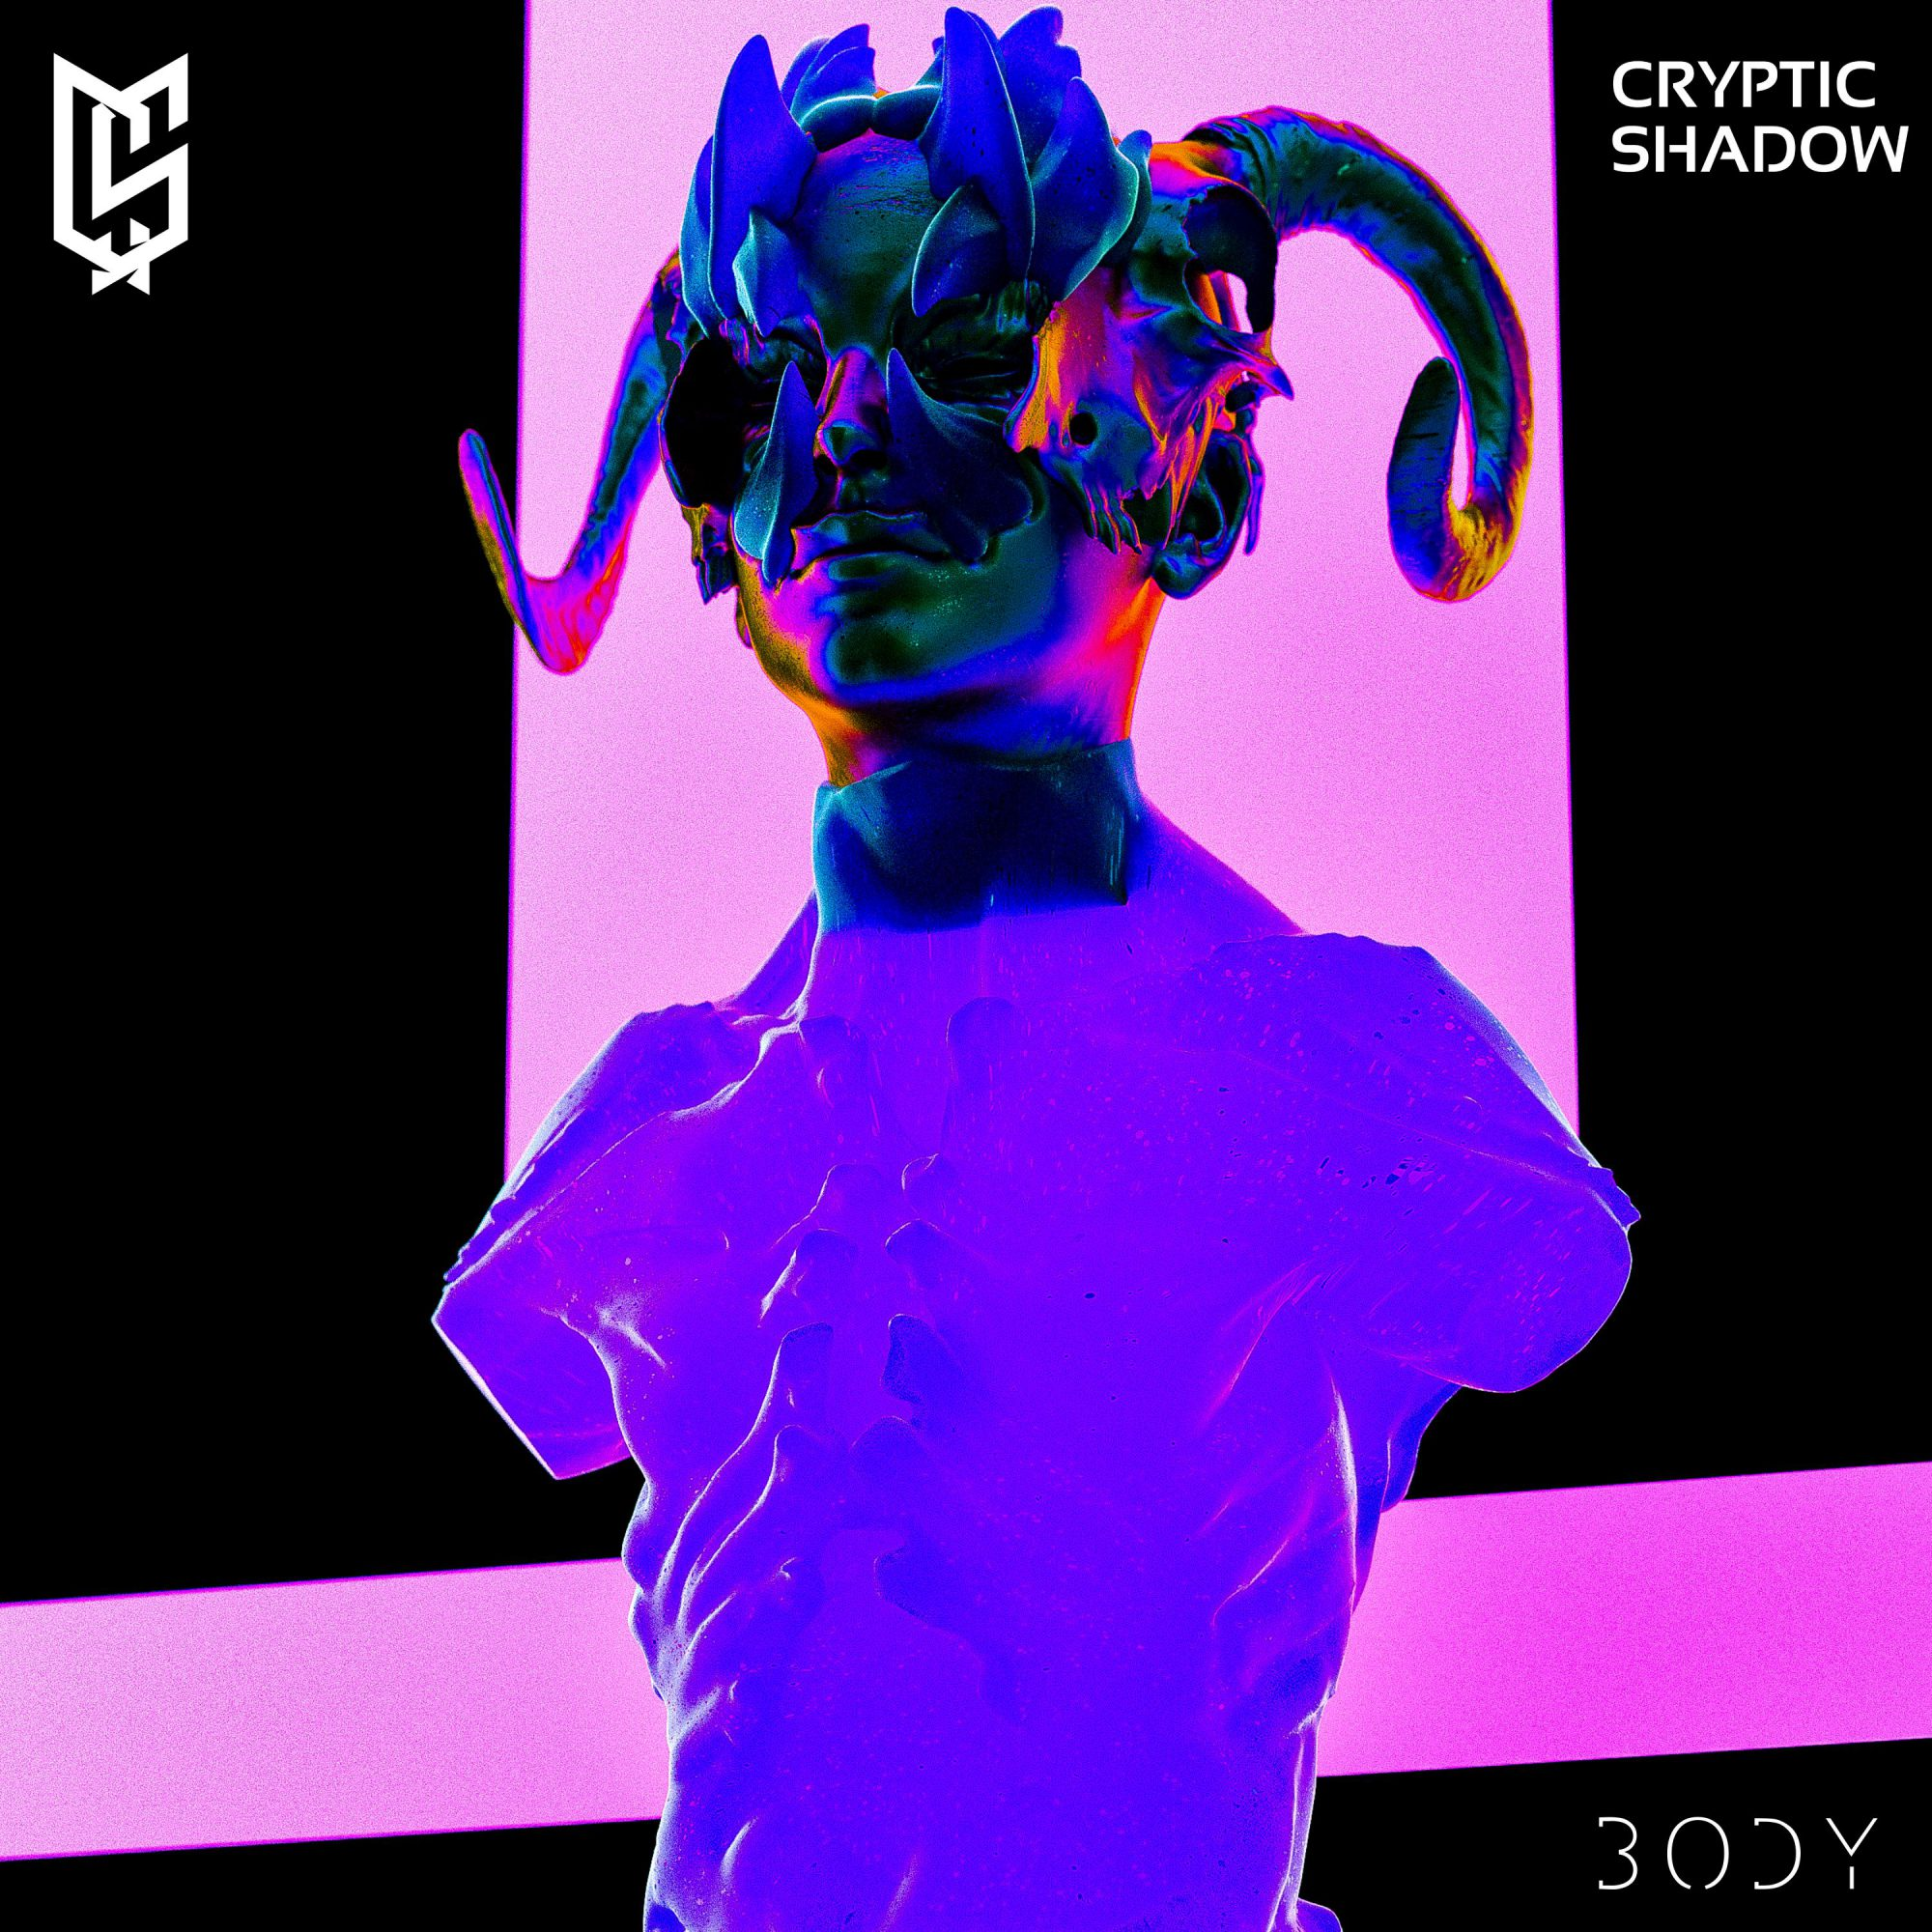 Cryptic Shadow Body EP